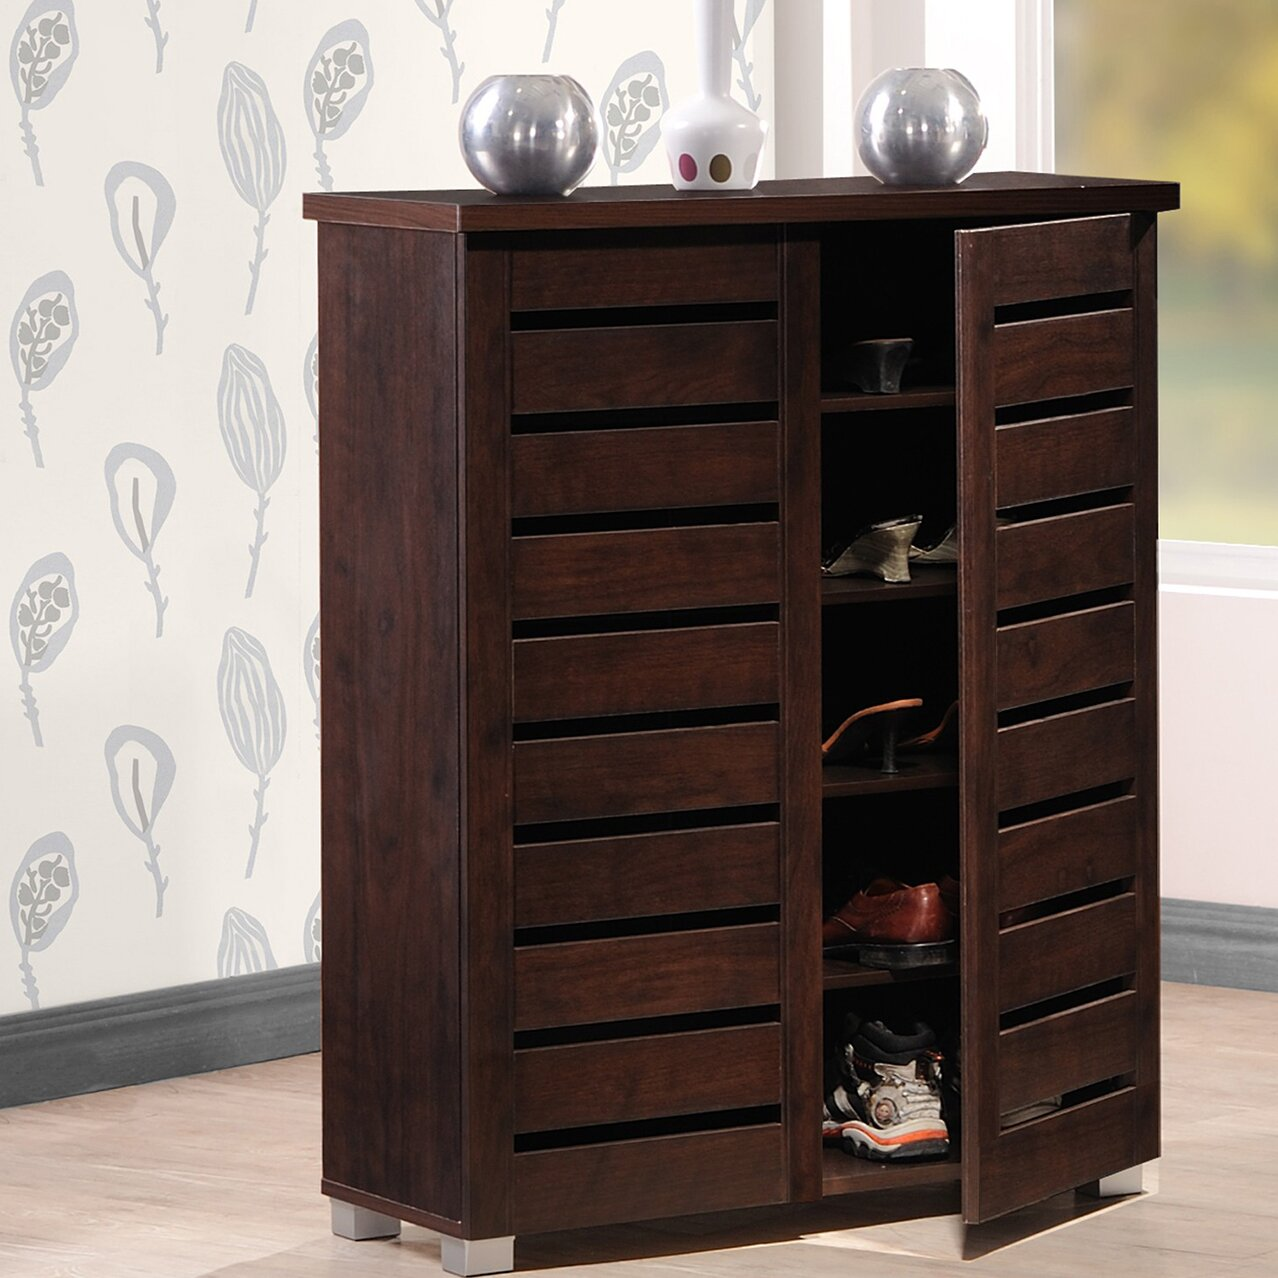 Mudroom Storage Cabinets : Wholesale interiors baxton studio adalwin pair shoe